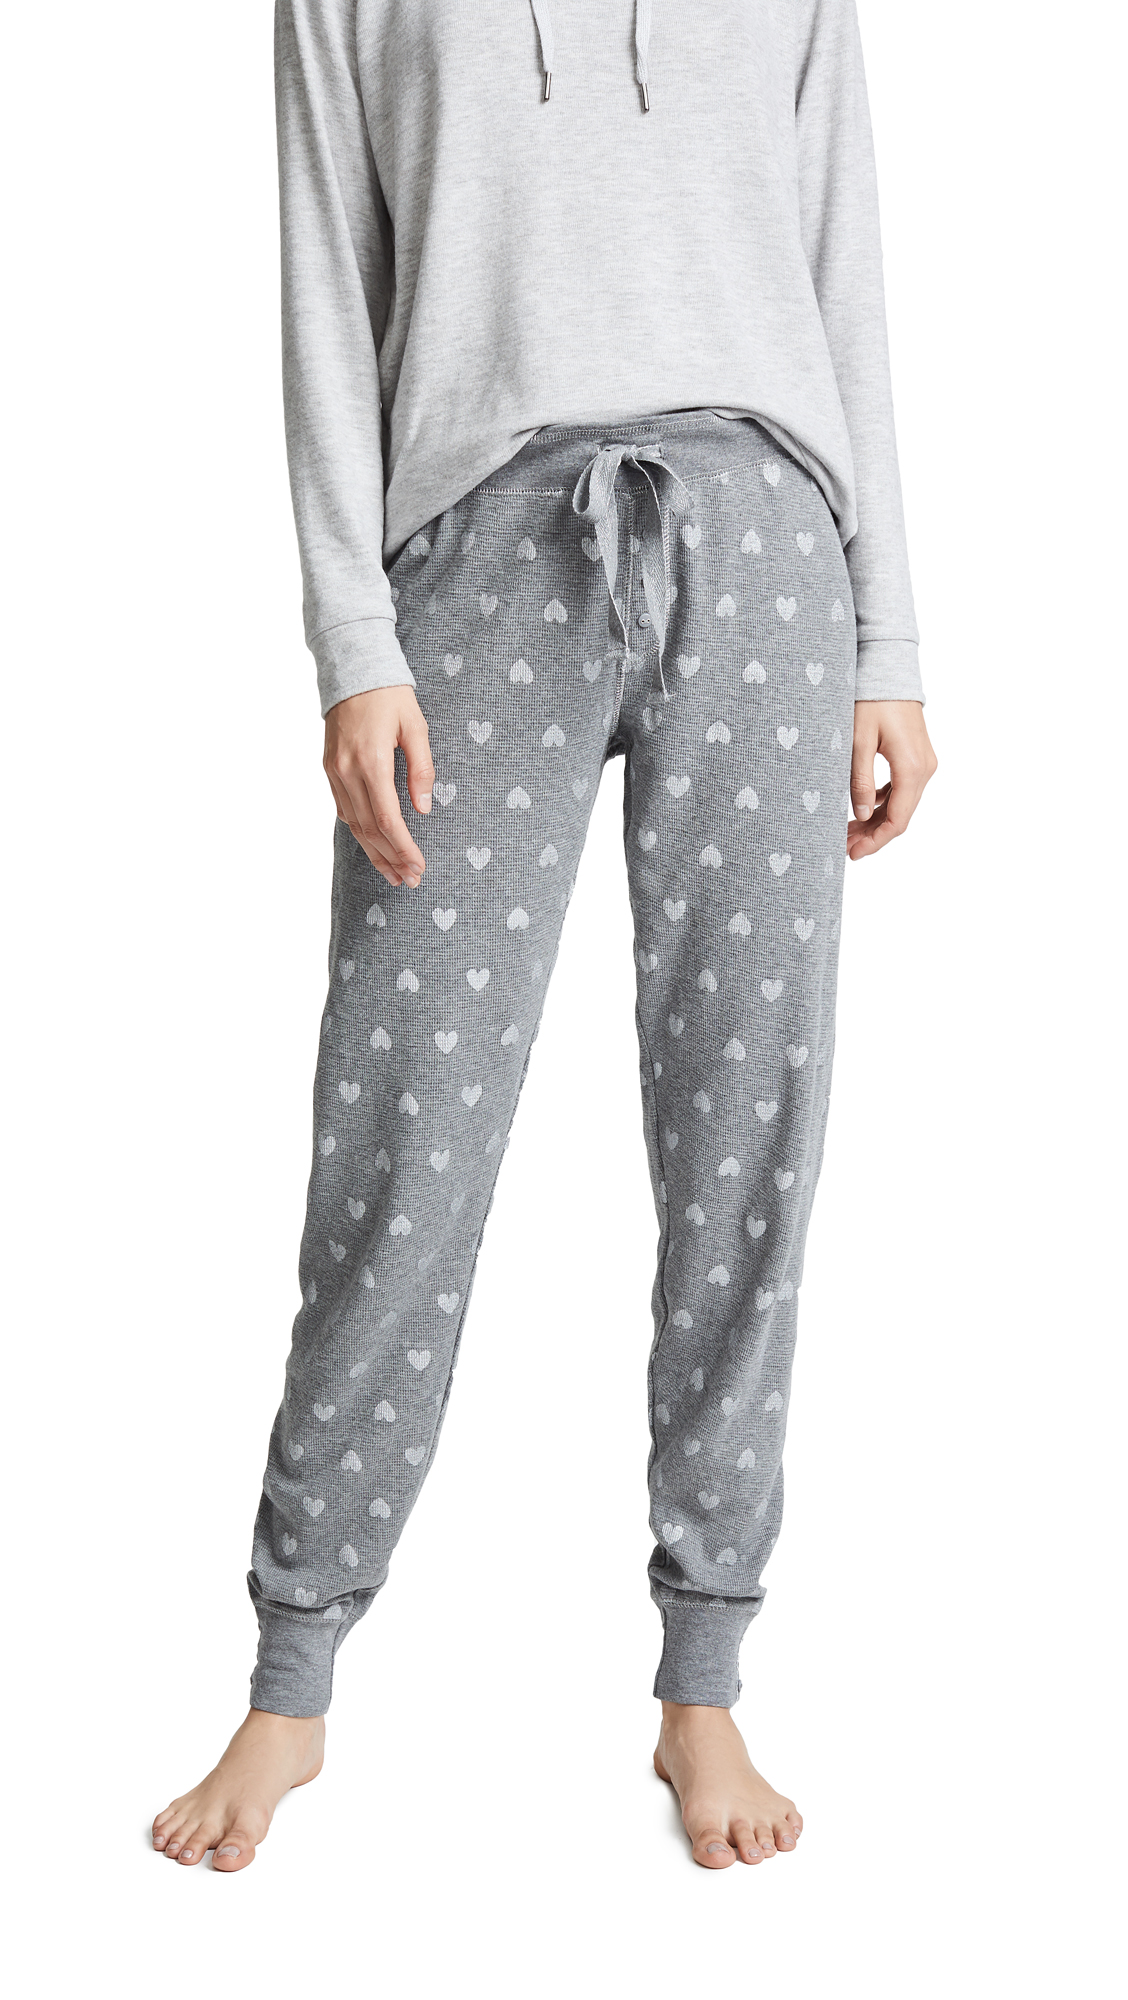 PJ Salvage Wild Heart PJ Bottoms In Heather Grey